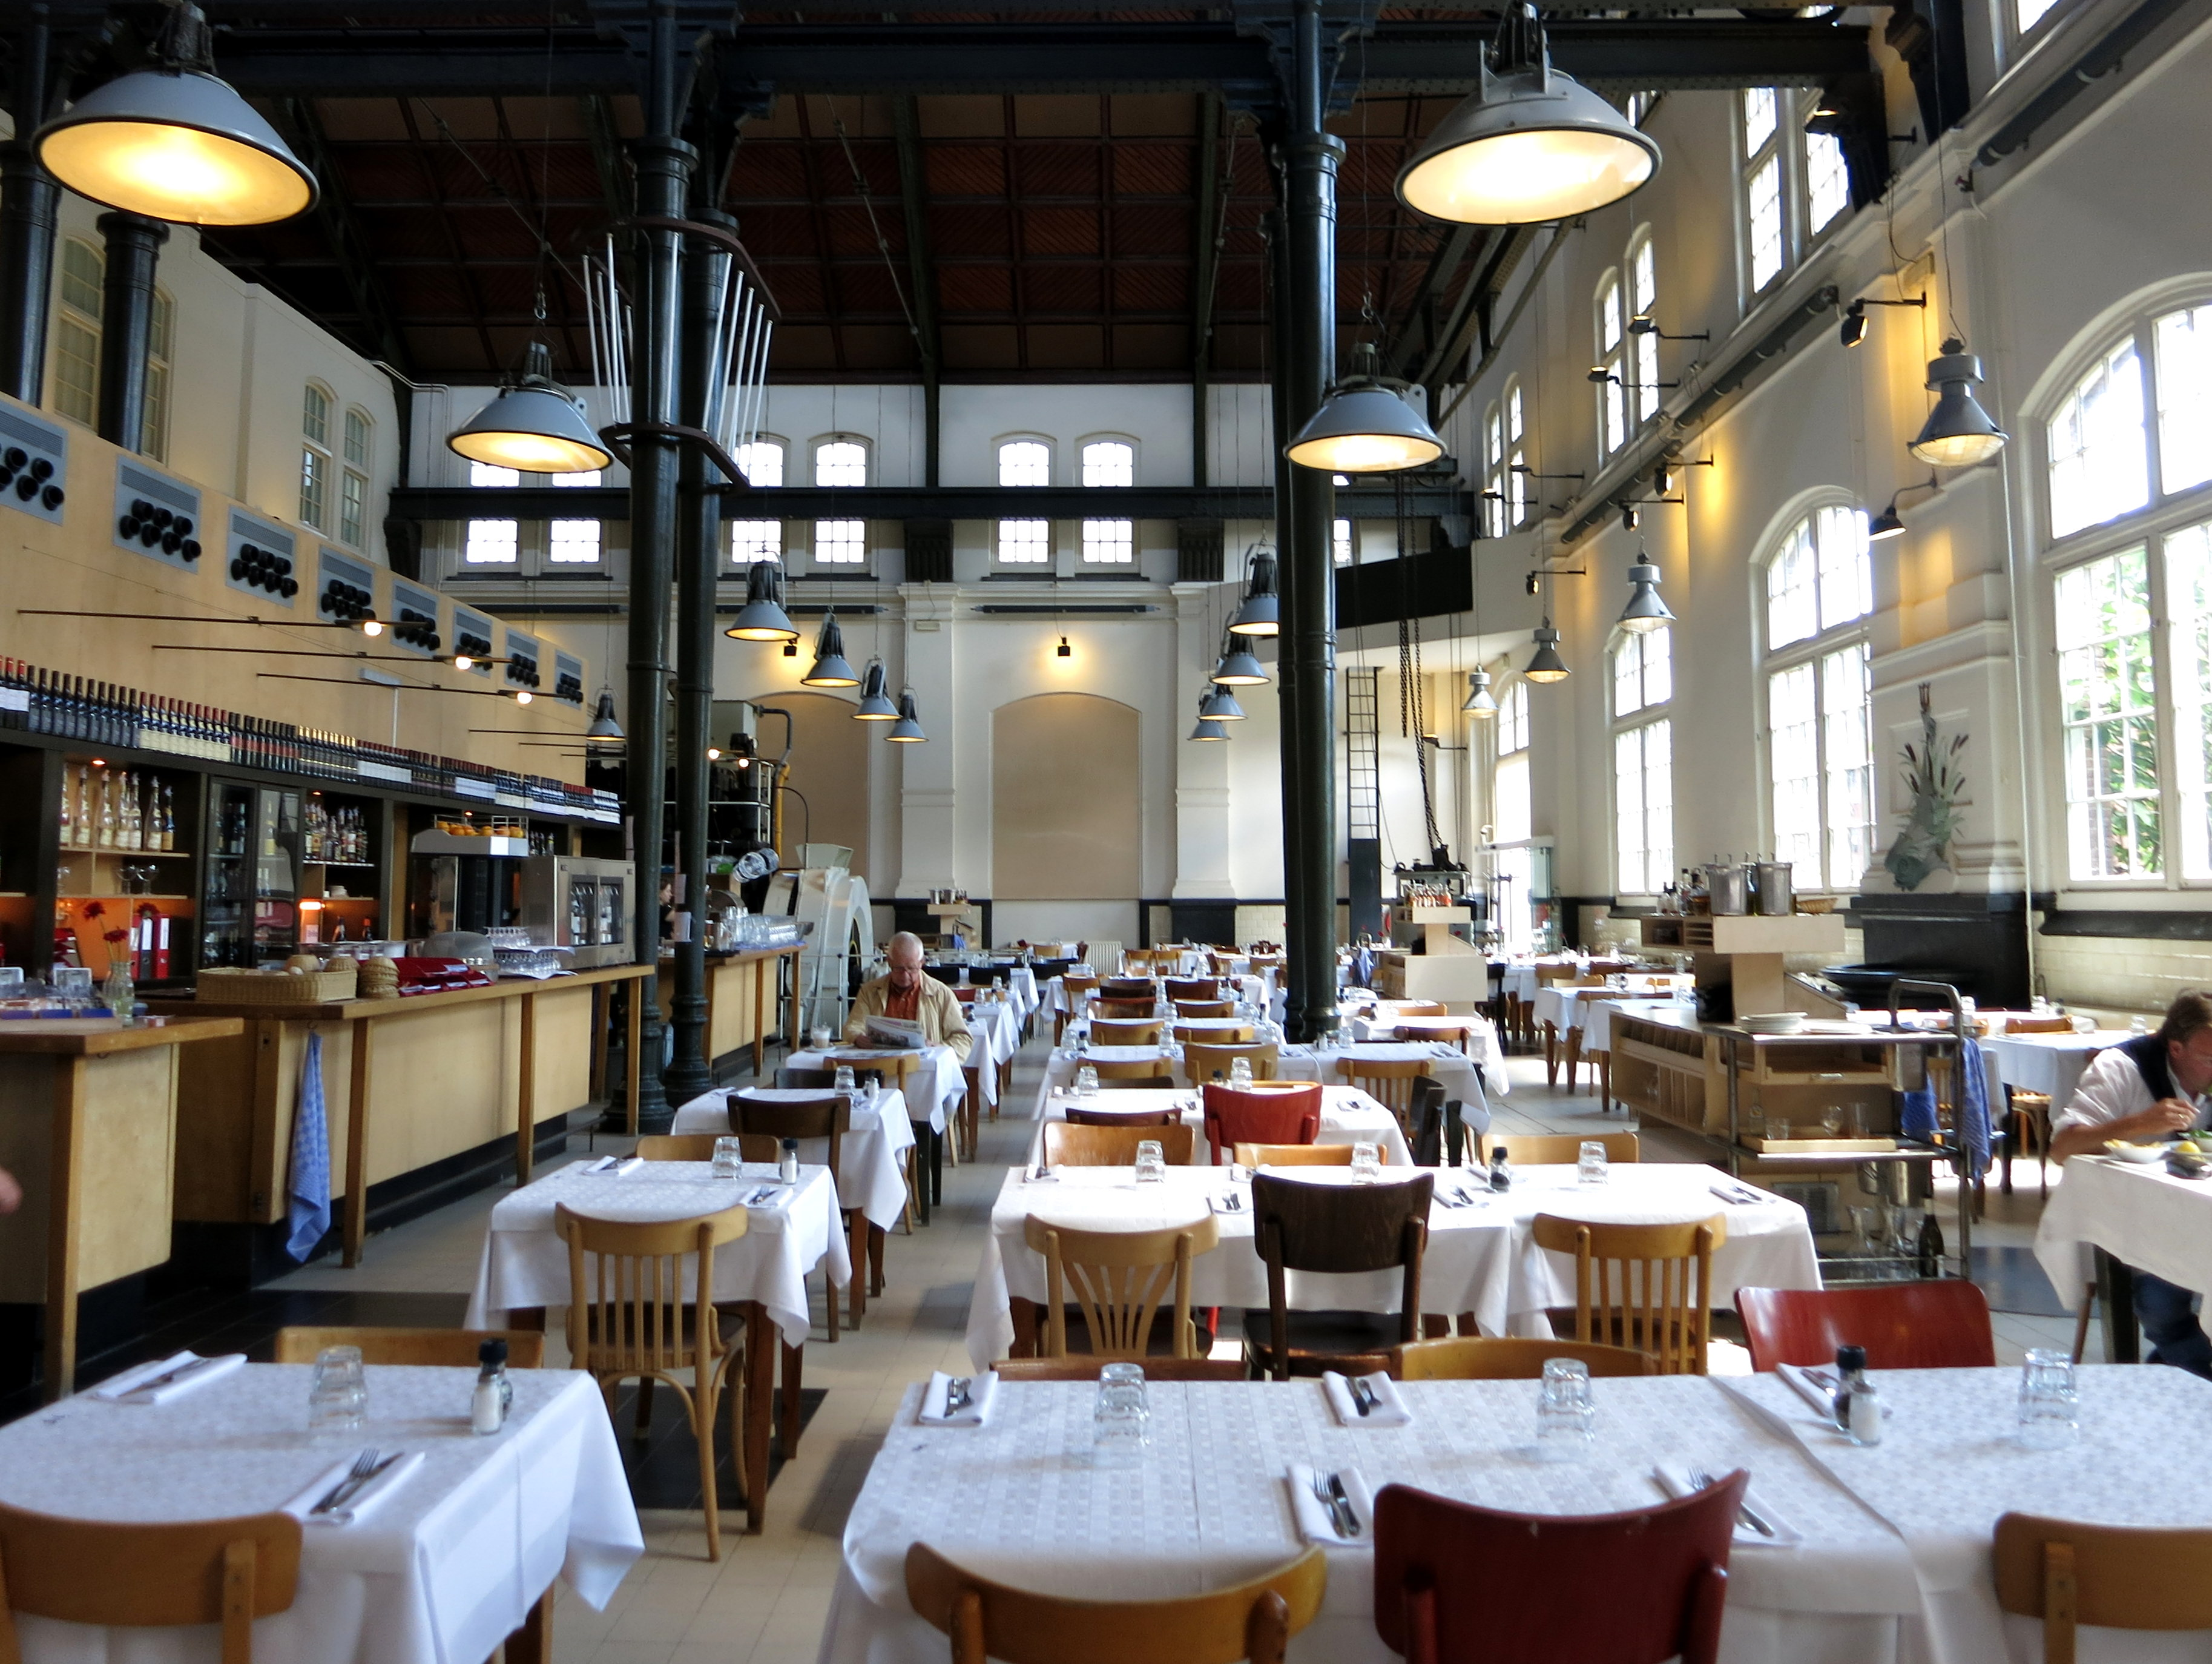 Cafe restaurant amsterdam spacious in